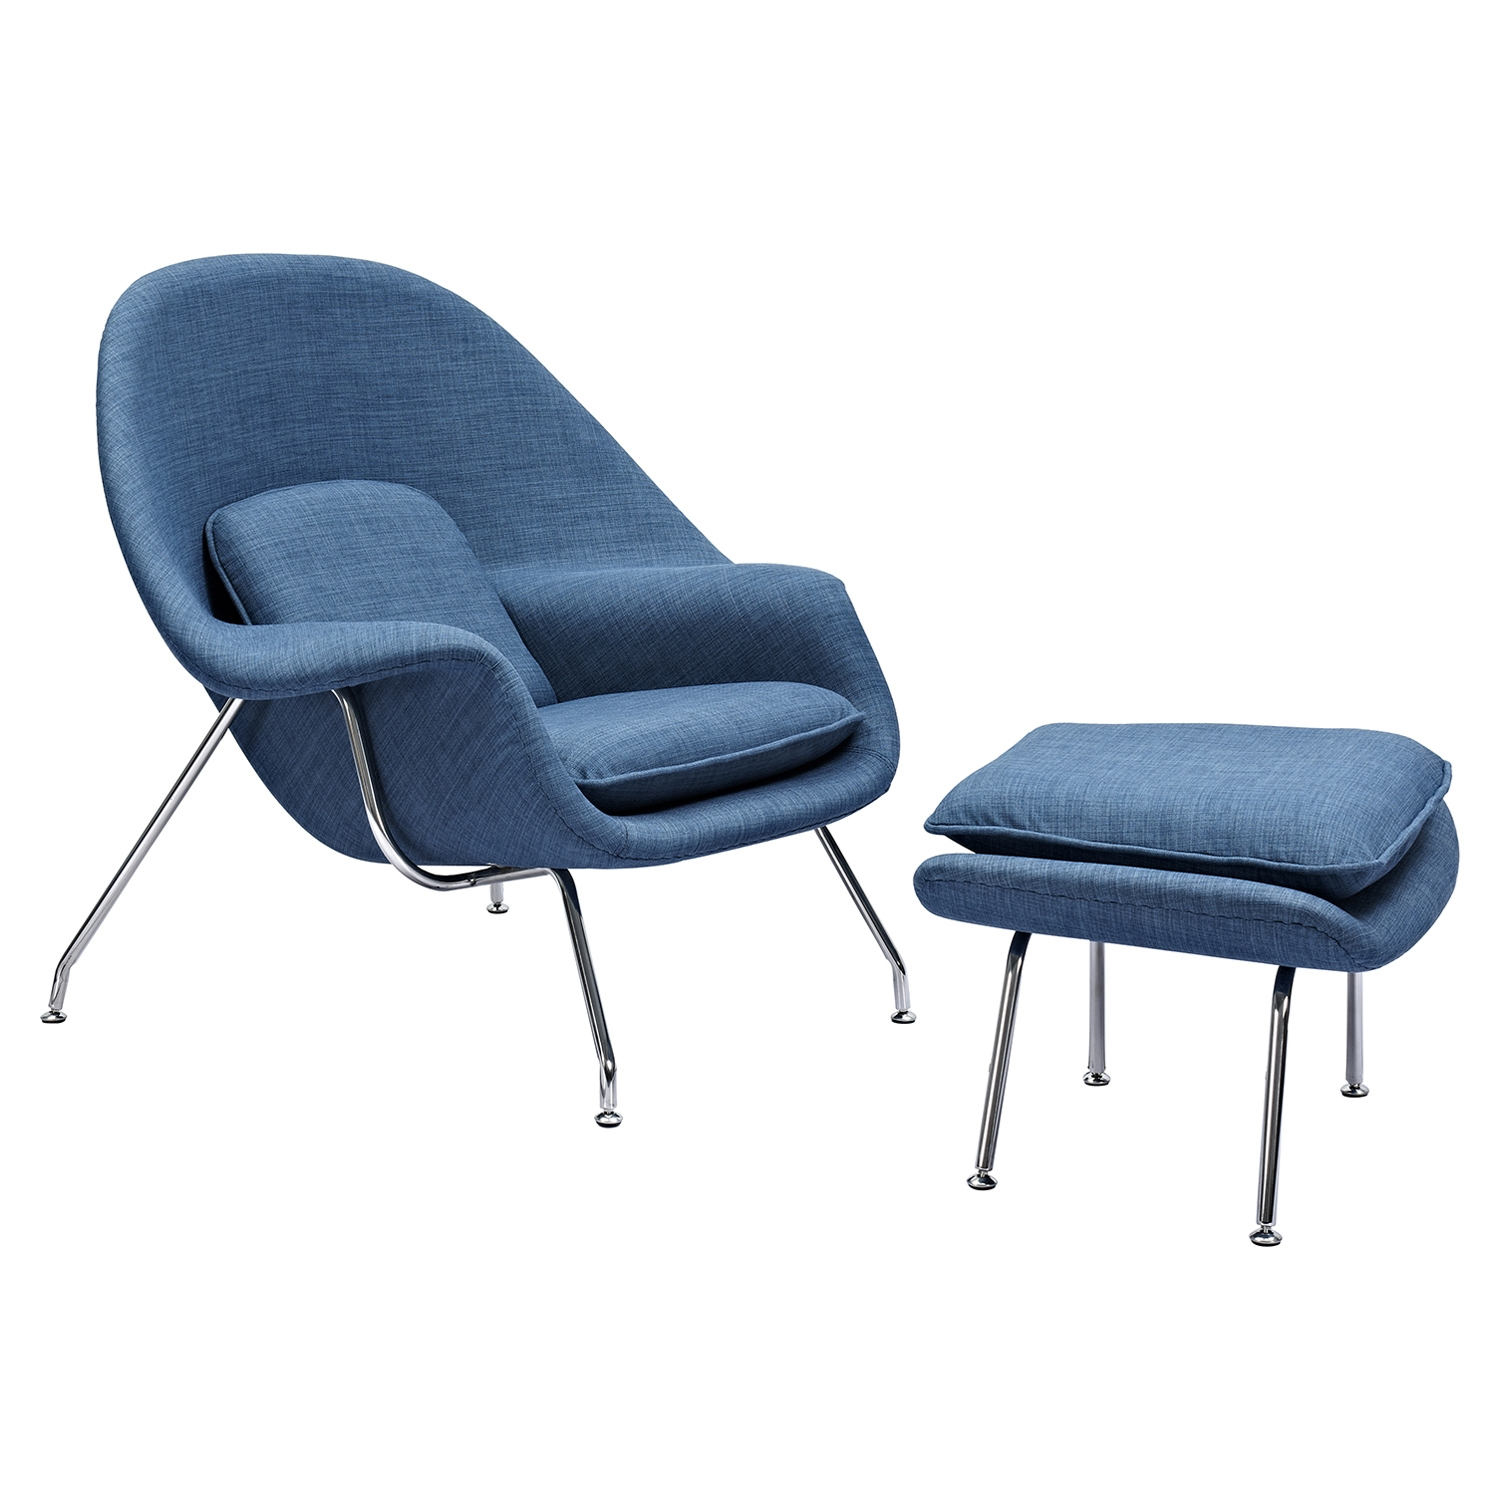 Saro Upholstered Chair - Dodger Blue